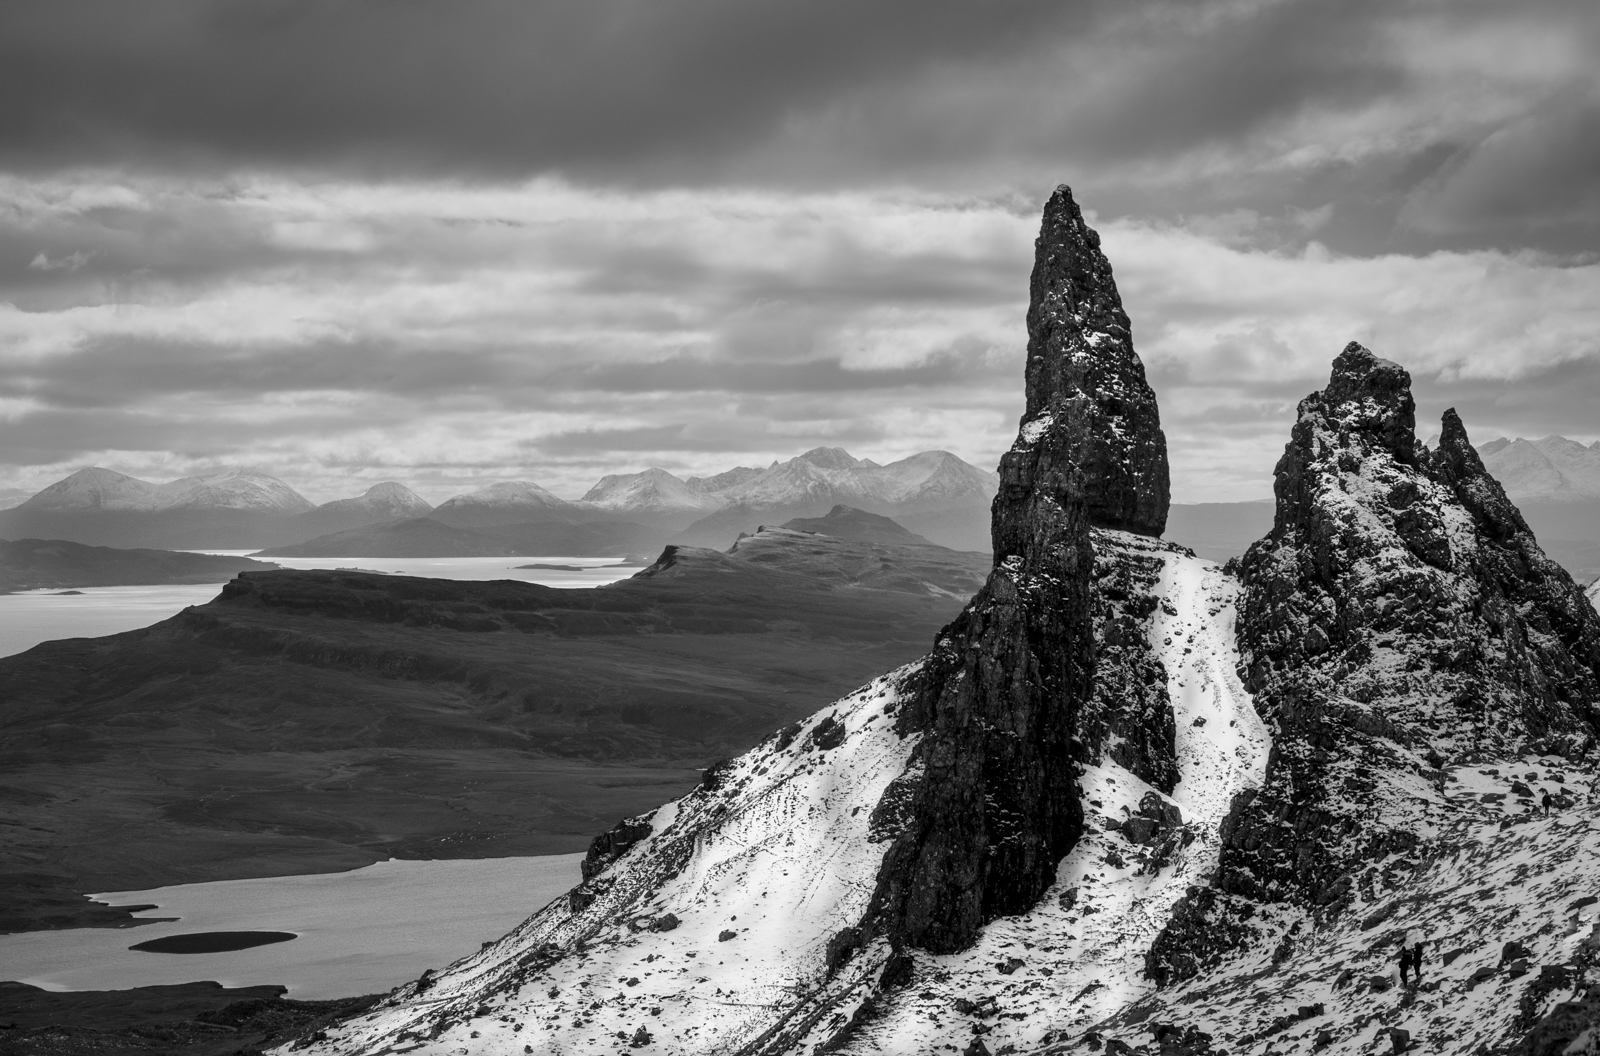 The Old Man of Storr © Nicky Pascoe ARPS